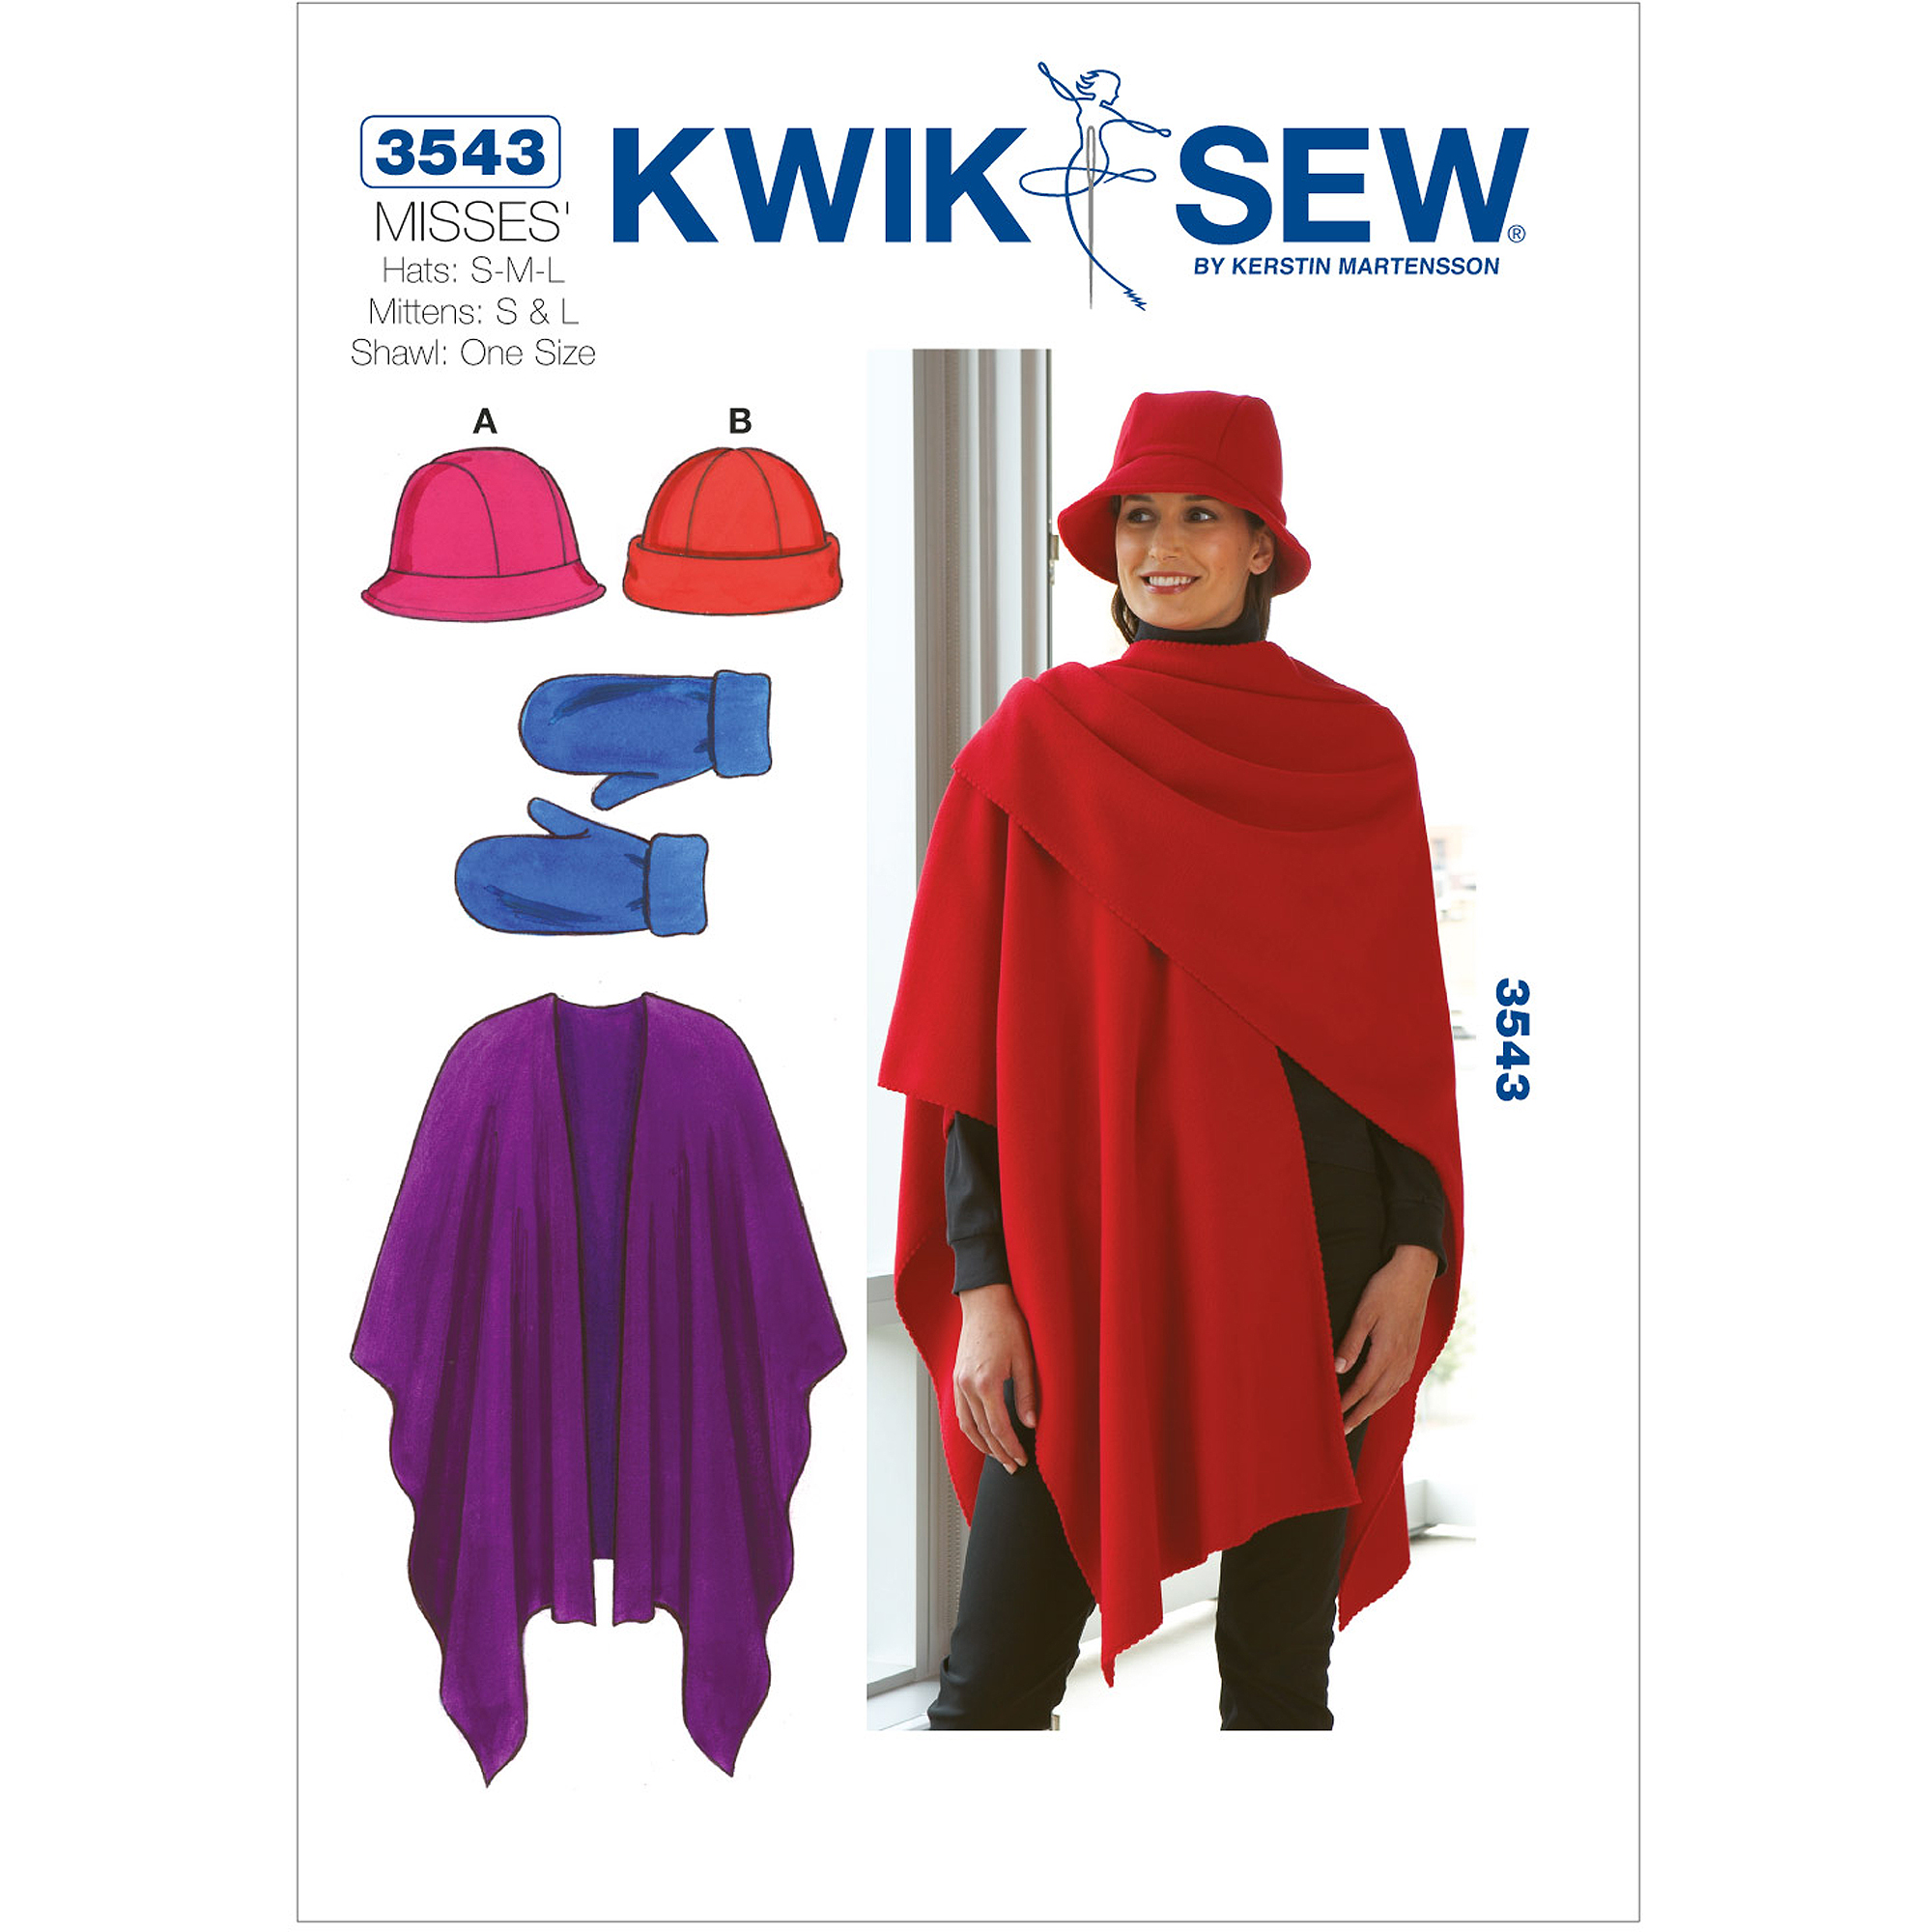 Kwik Sew Pattern Hats, Mittens and Shawl, Hats: (S, M, L), Mittens (S, L), Shawl (One Size)